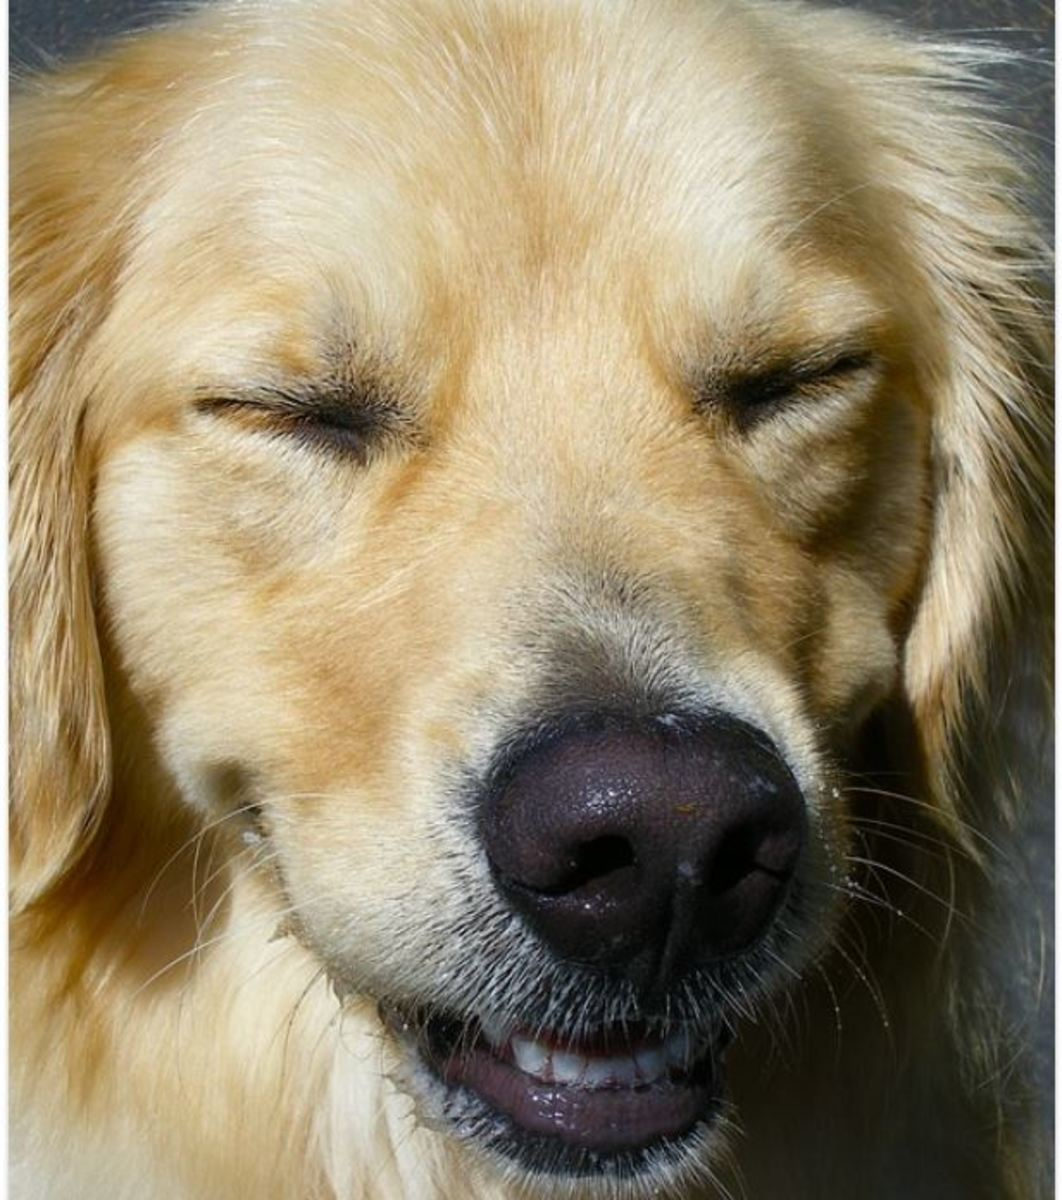 A submissive grin in dogs is intended to pacify or appease.